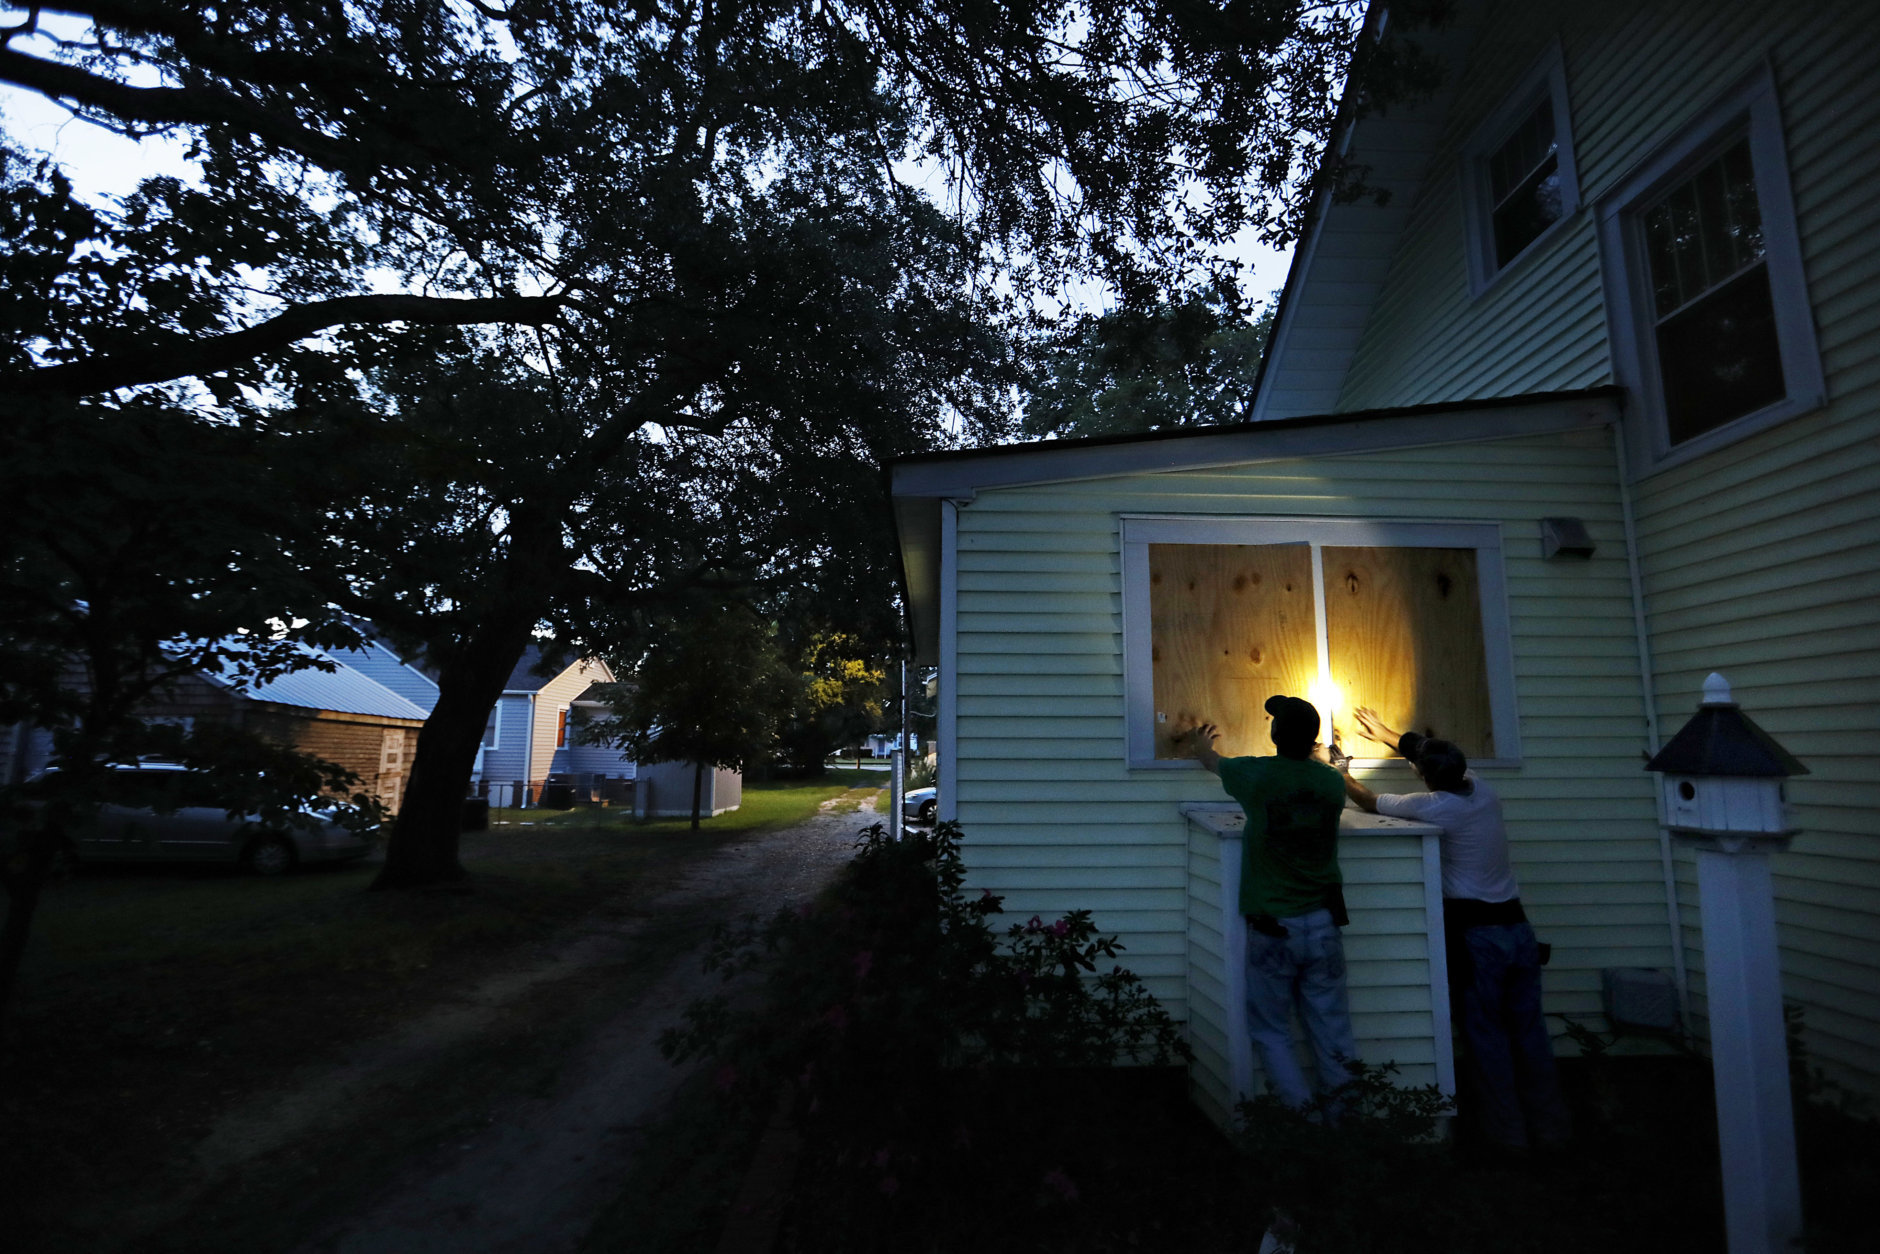 Russell Meadows, left, helps neighbor Rob Muller board up his home ahead of Hurricane Florence in Morehead City, N.C., Tuesday, Sept. 11, 2018. Florence exploded into a potentially catastrophic hurricane Monday as it closed in on North and South Carolina, carrying winds up to 140 mph (220 kph) and water that could wreak havoc over a wide stretch of the eastern United States later this week. (AP Photo/David Goldman)